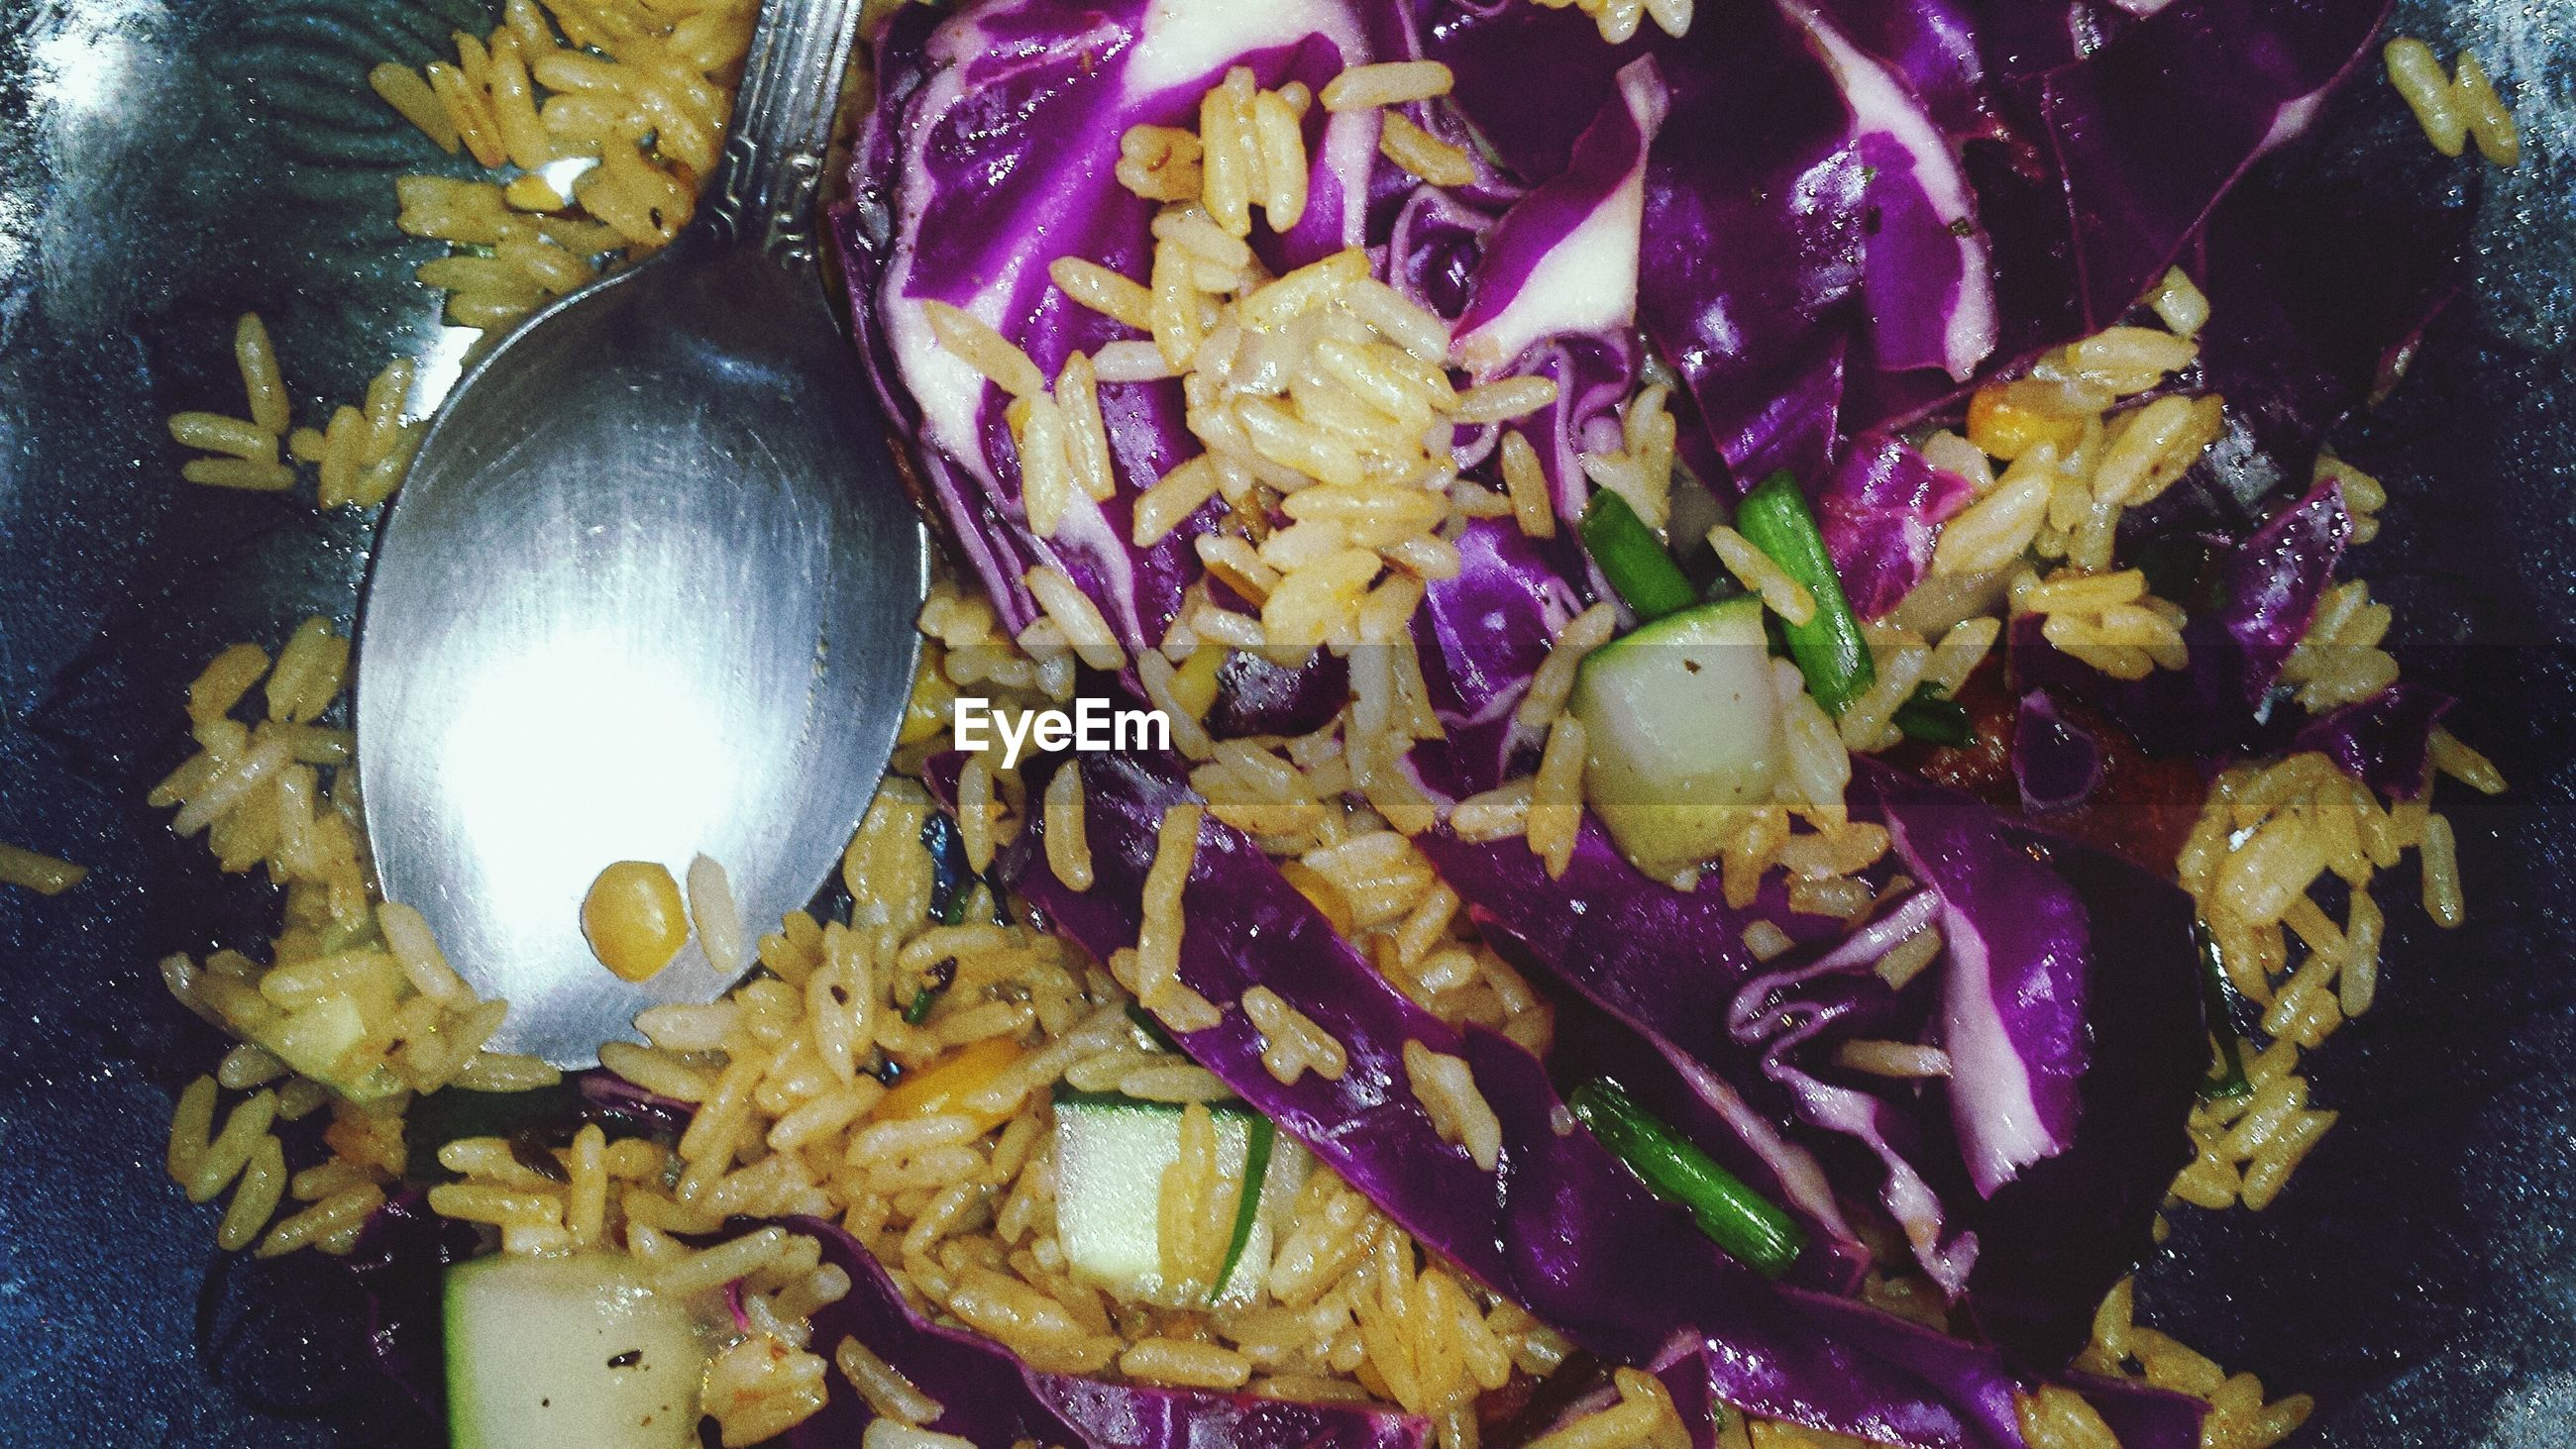 food and drink, food, close-up, freshness, indoors, purple, preparation, appetizer, cooked, no people, ready-to-eat, meal